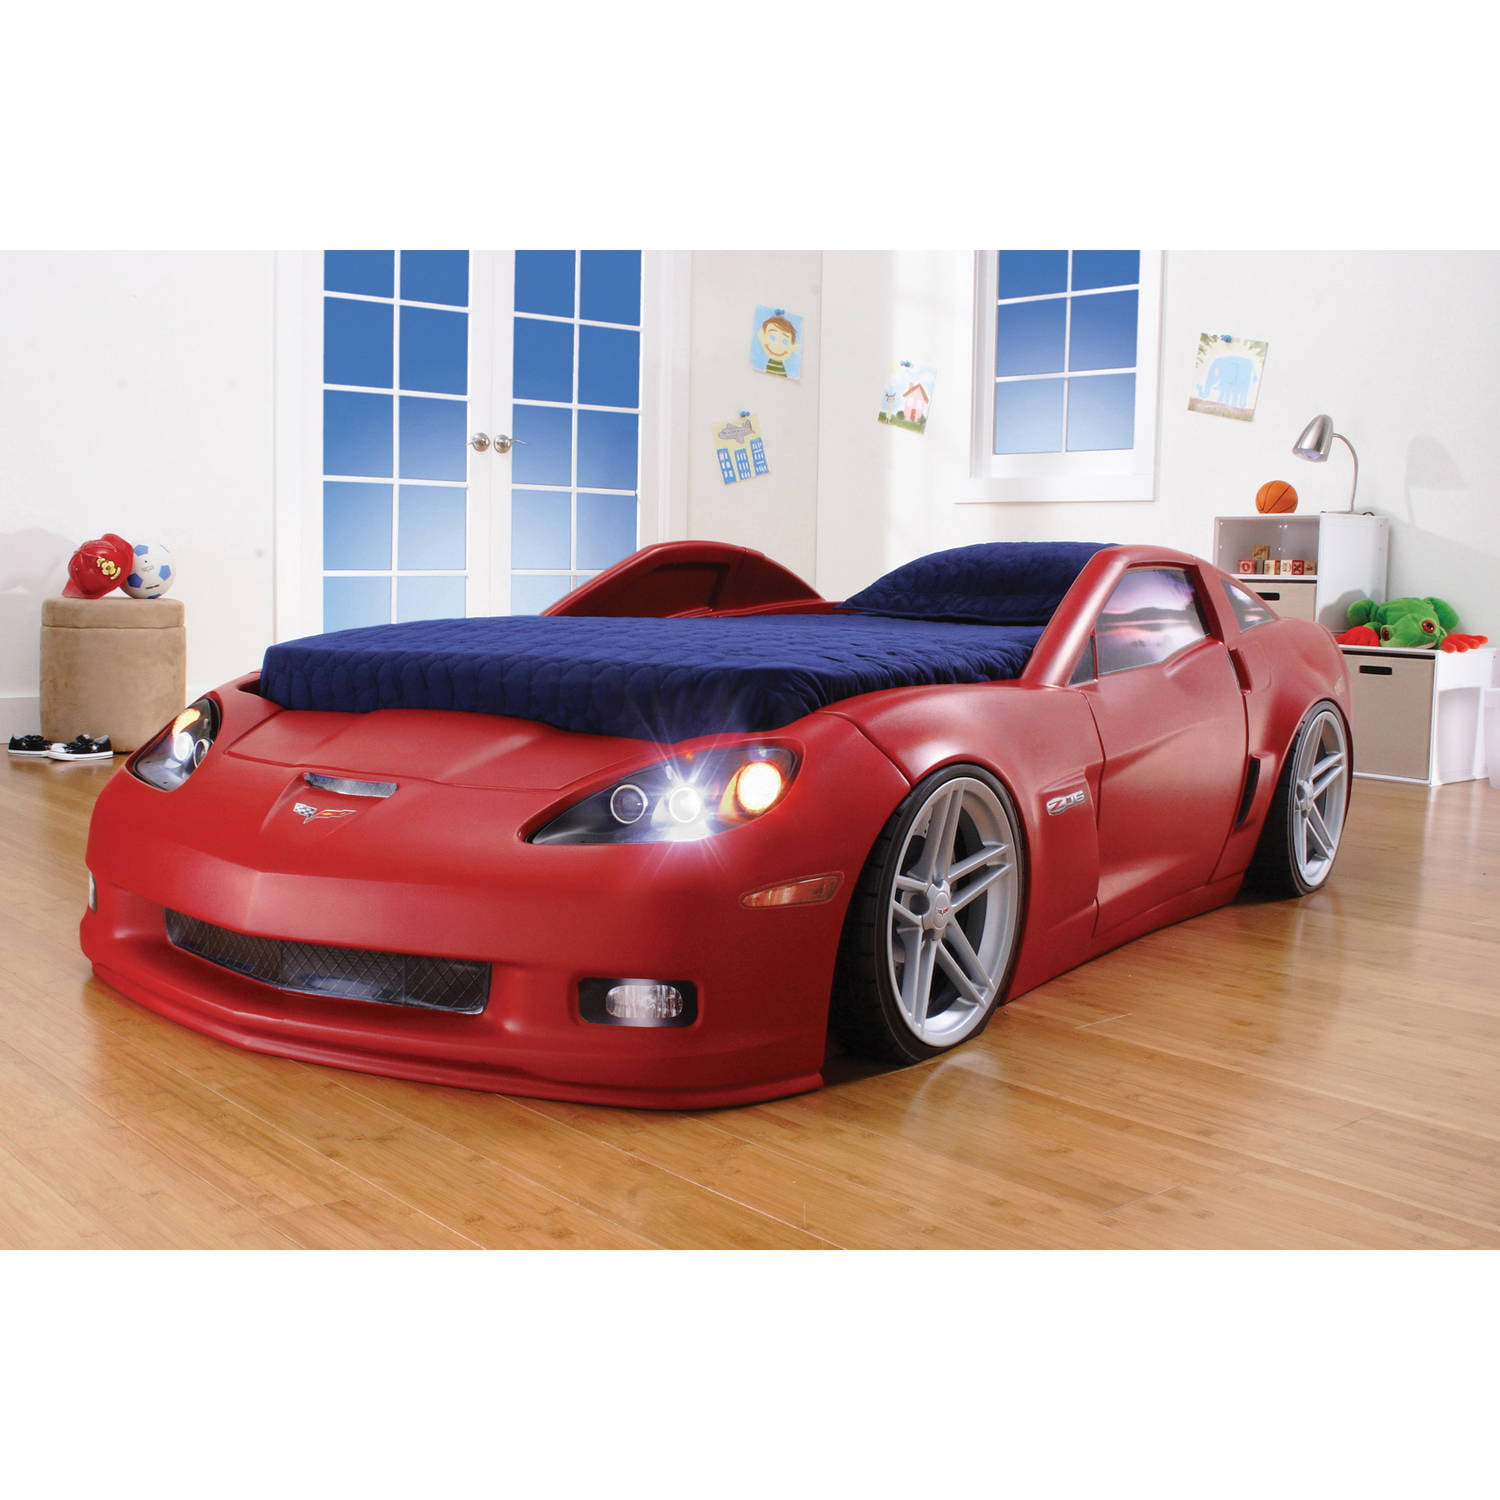 costway new kids race car bed toddler bed boys child furniture red wooden walmartcom